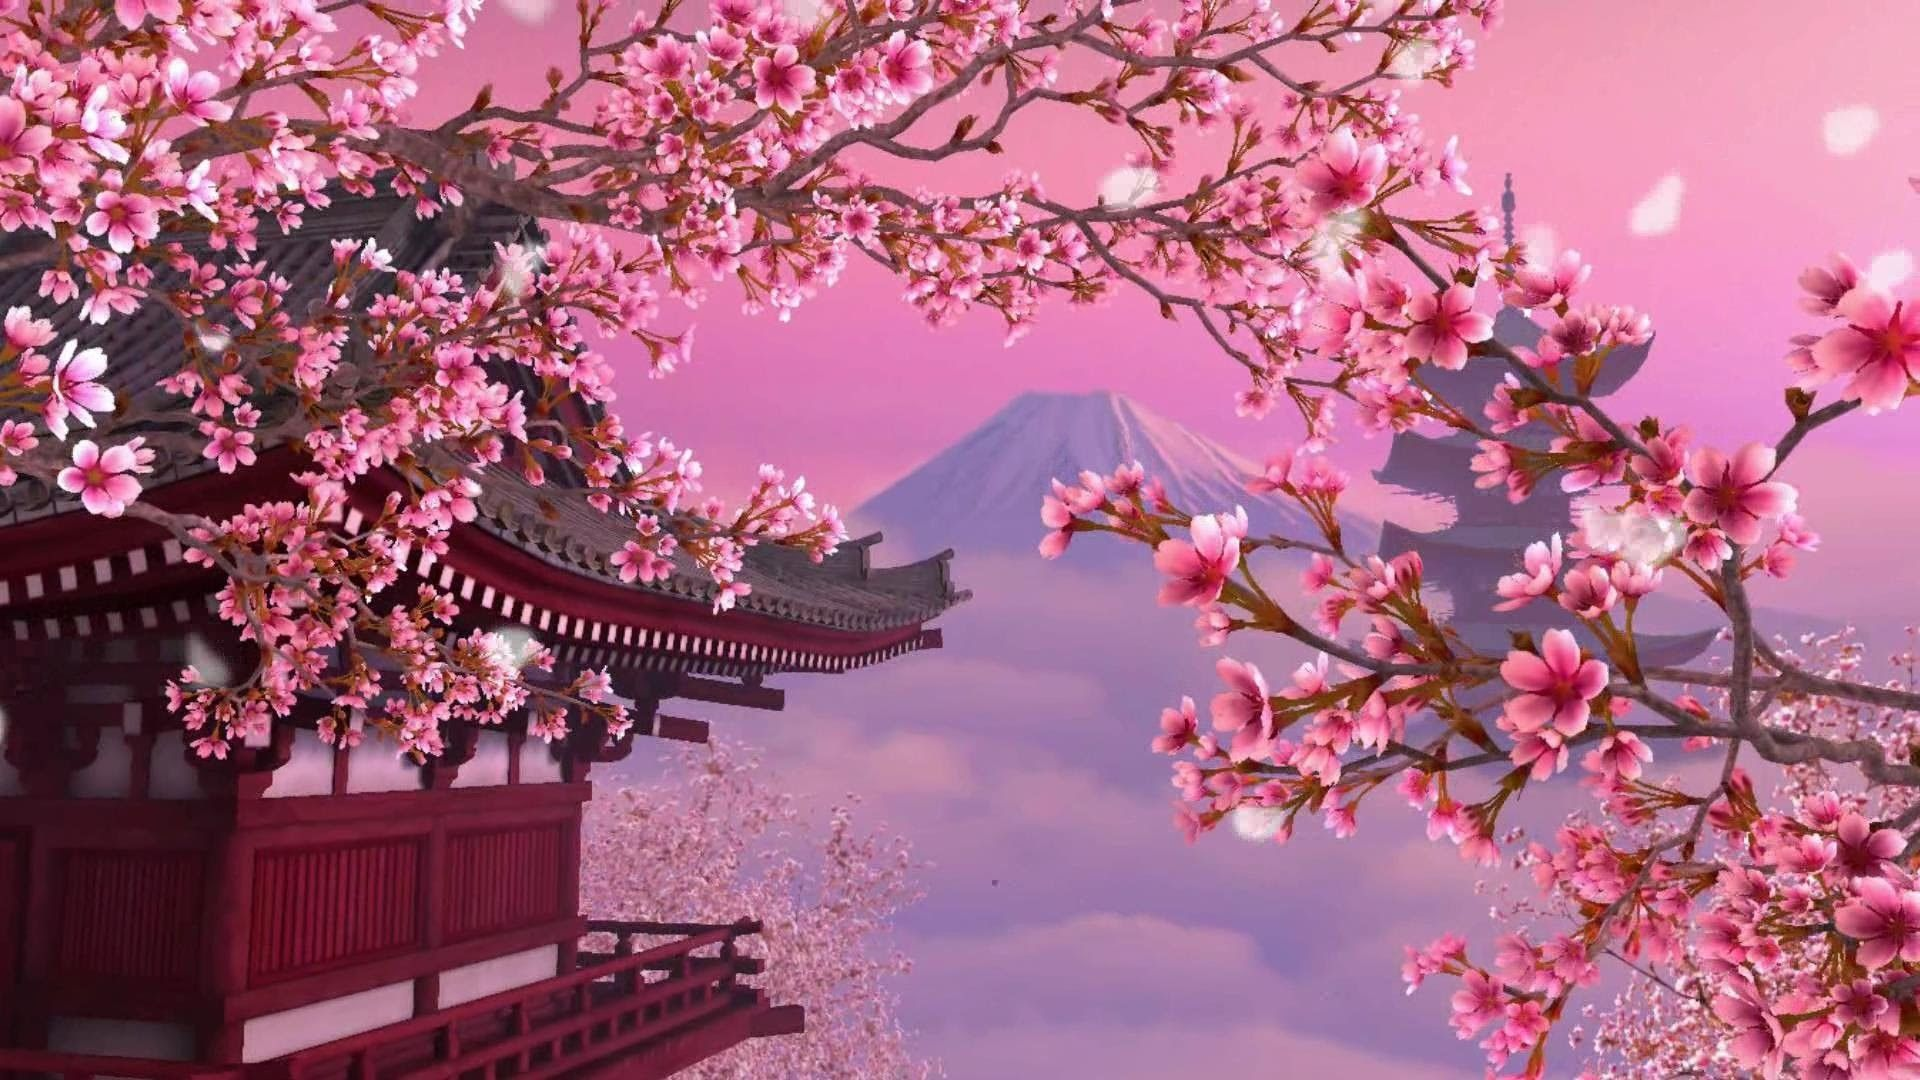 Spring Cherry Blossoms Desktop Wallpapers - Top Free ...